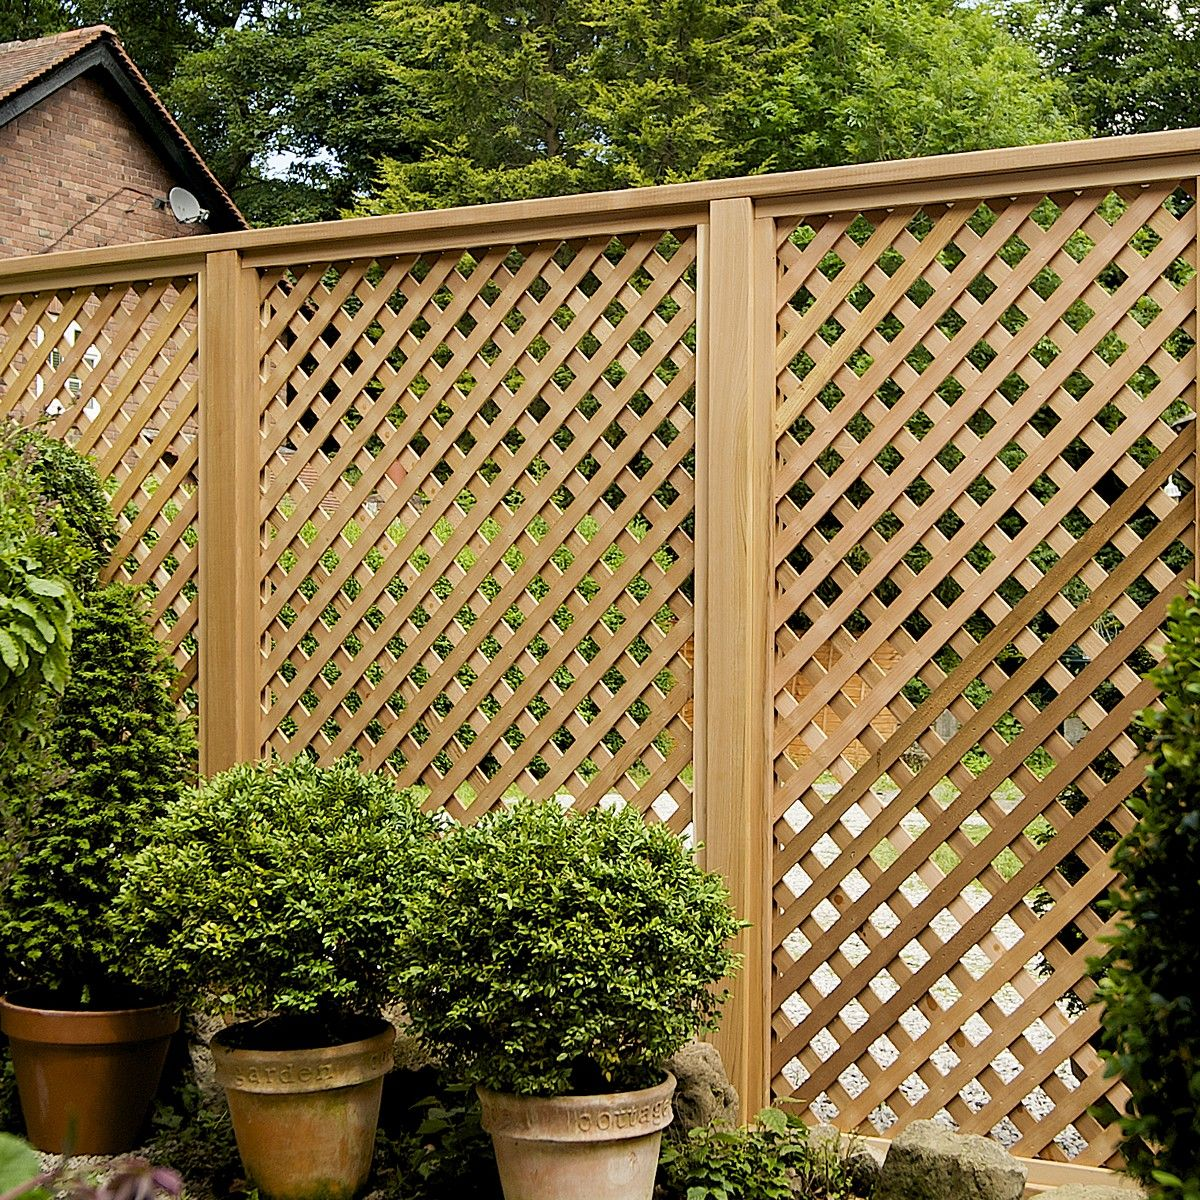 I love this lattice fencing. I need this to block the view